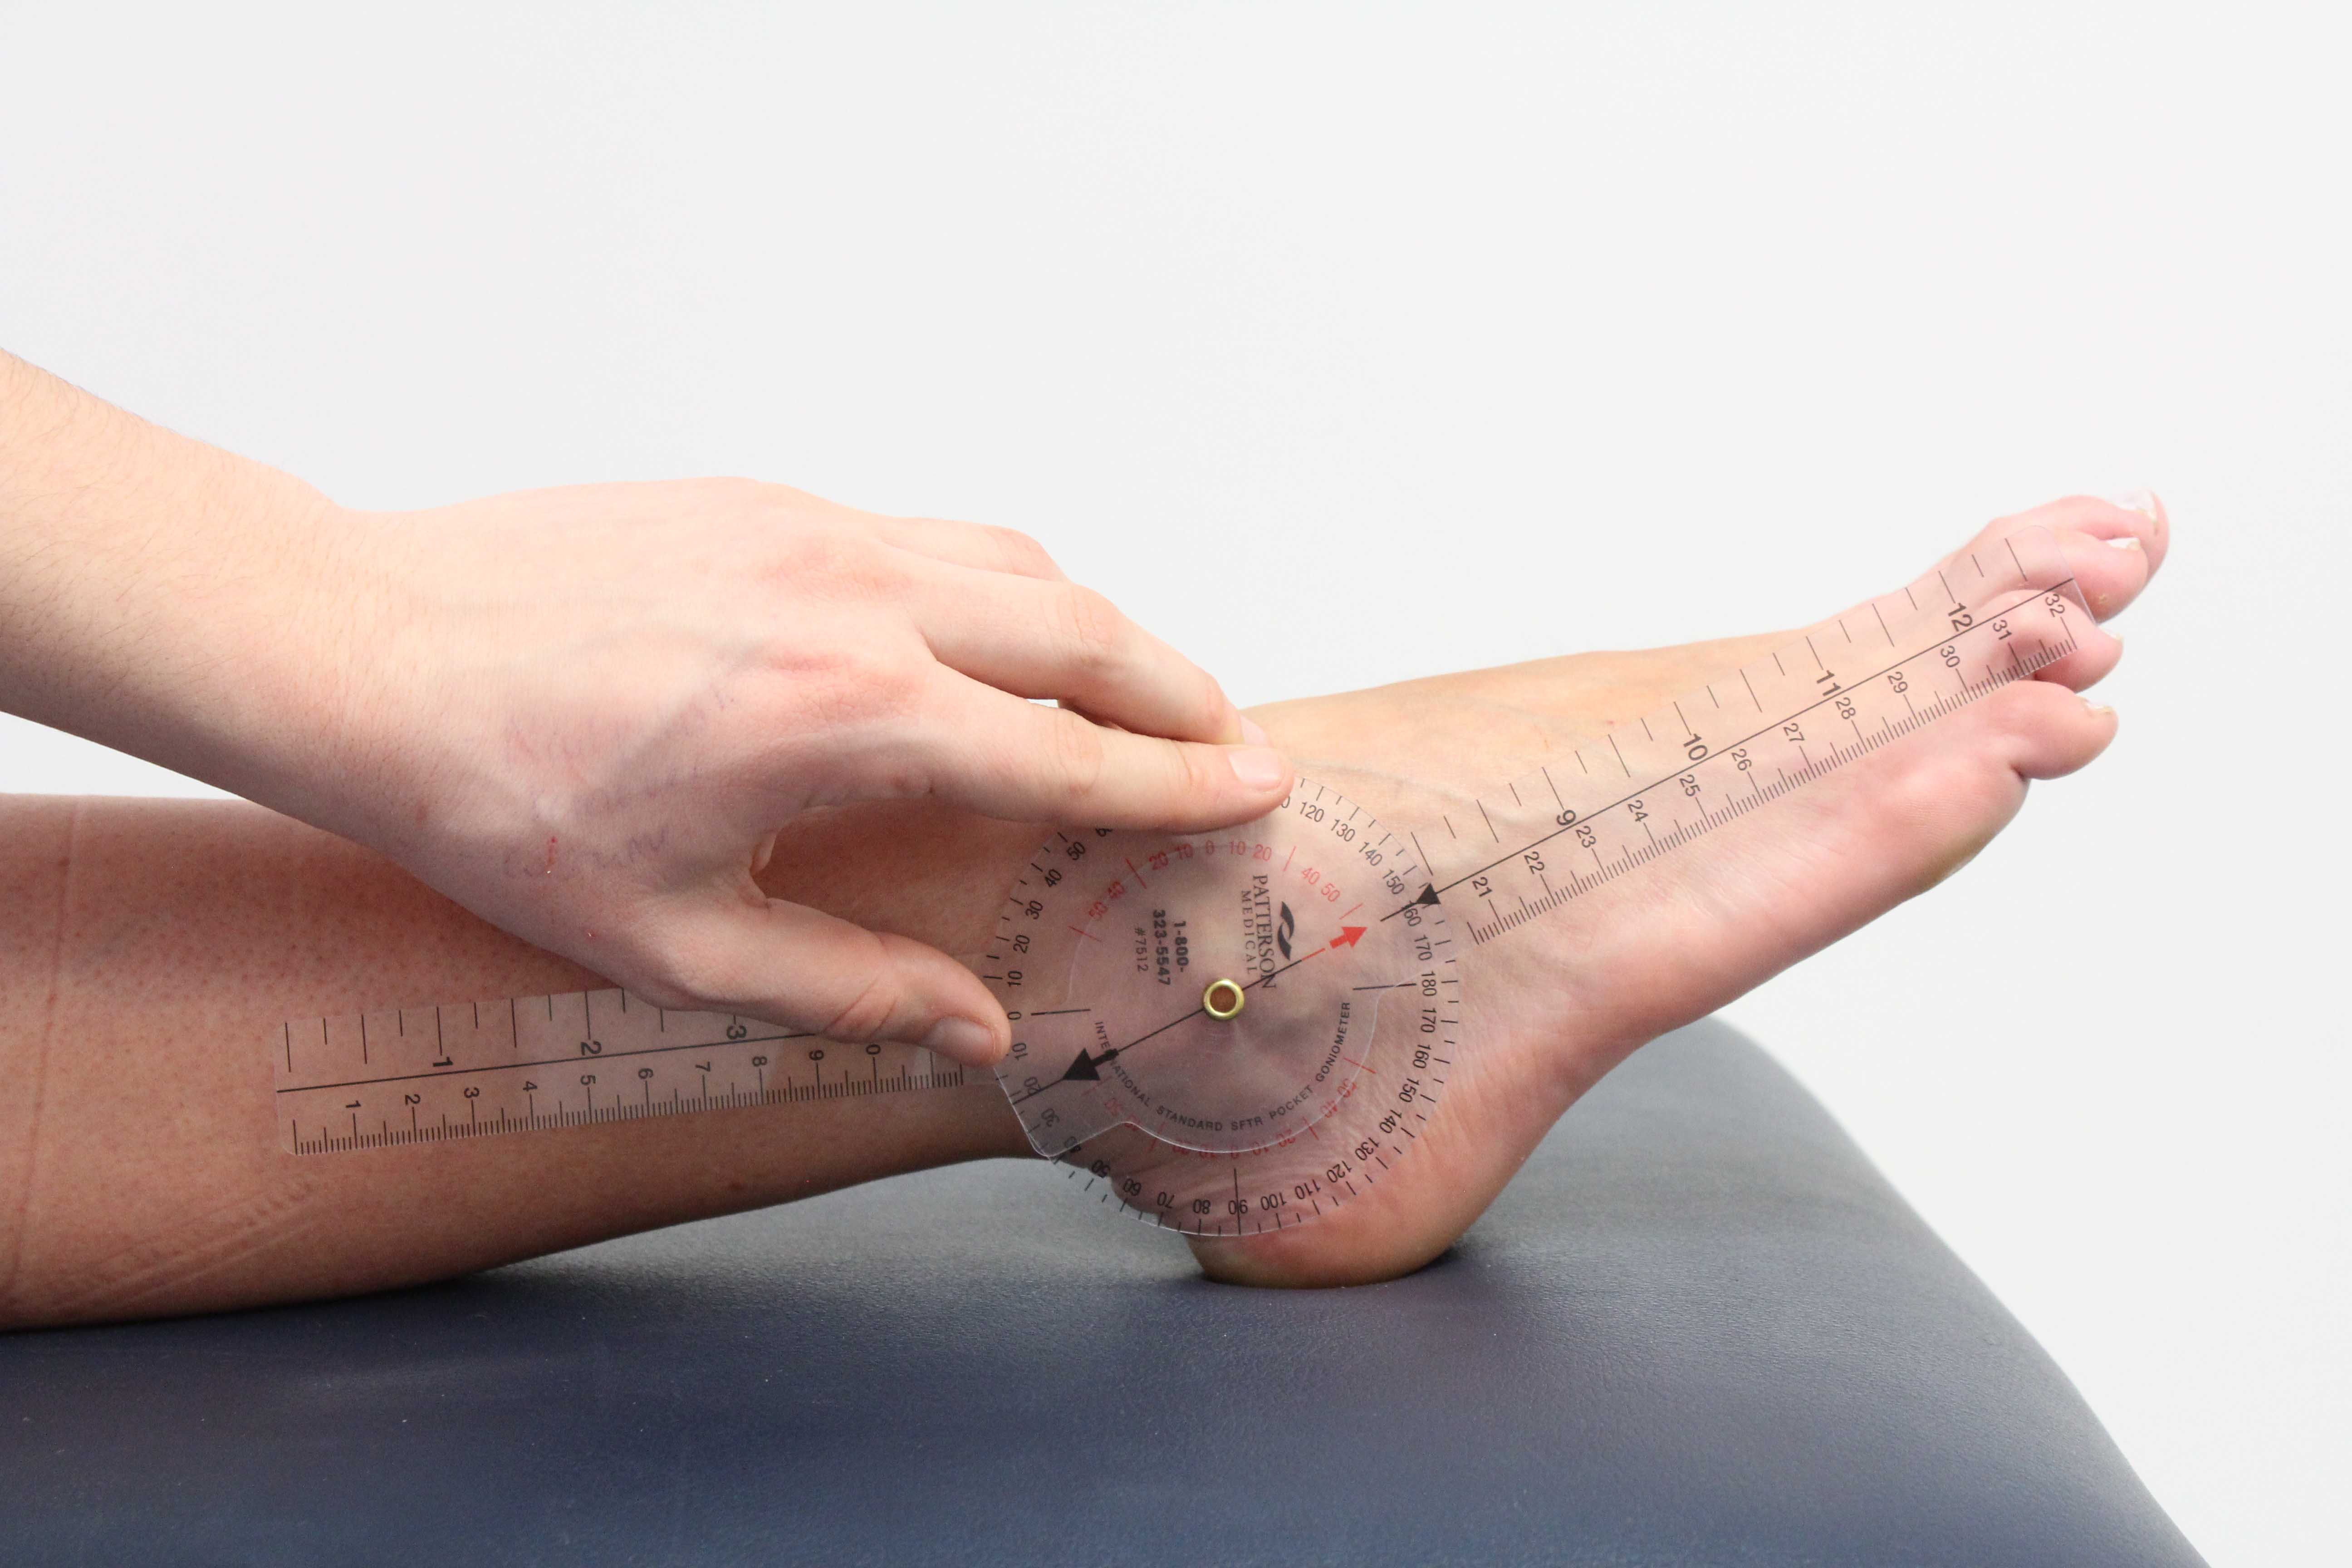 Assessment of the foot and ankle using a goniometer